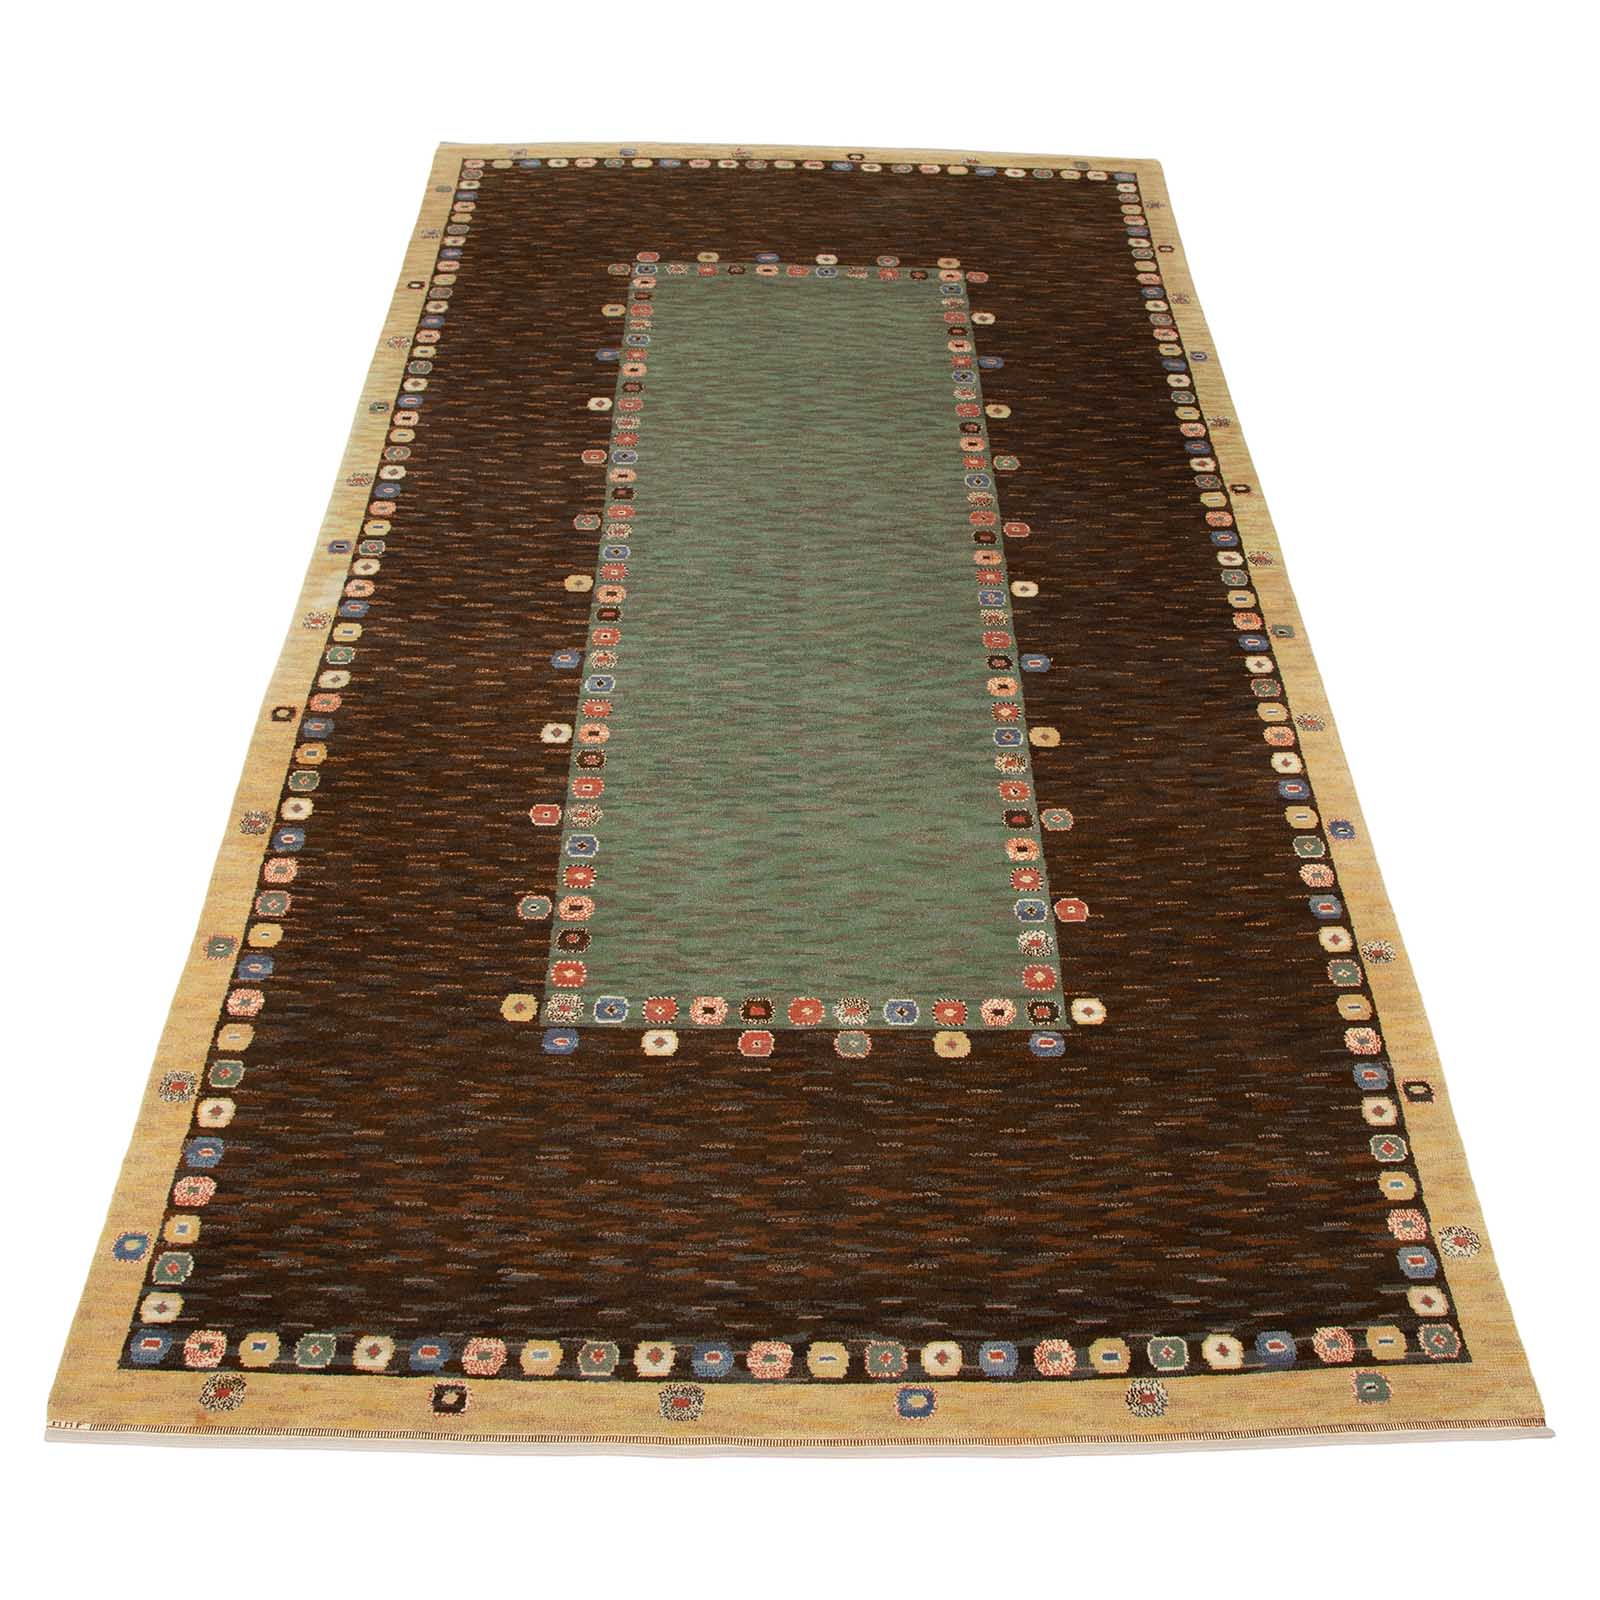 A large early rug, 'Tusenskönan'